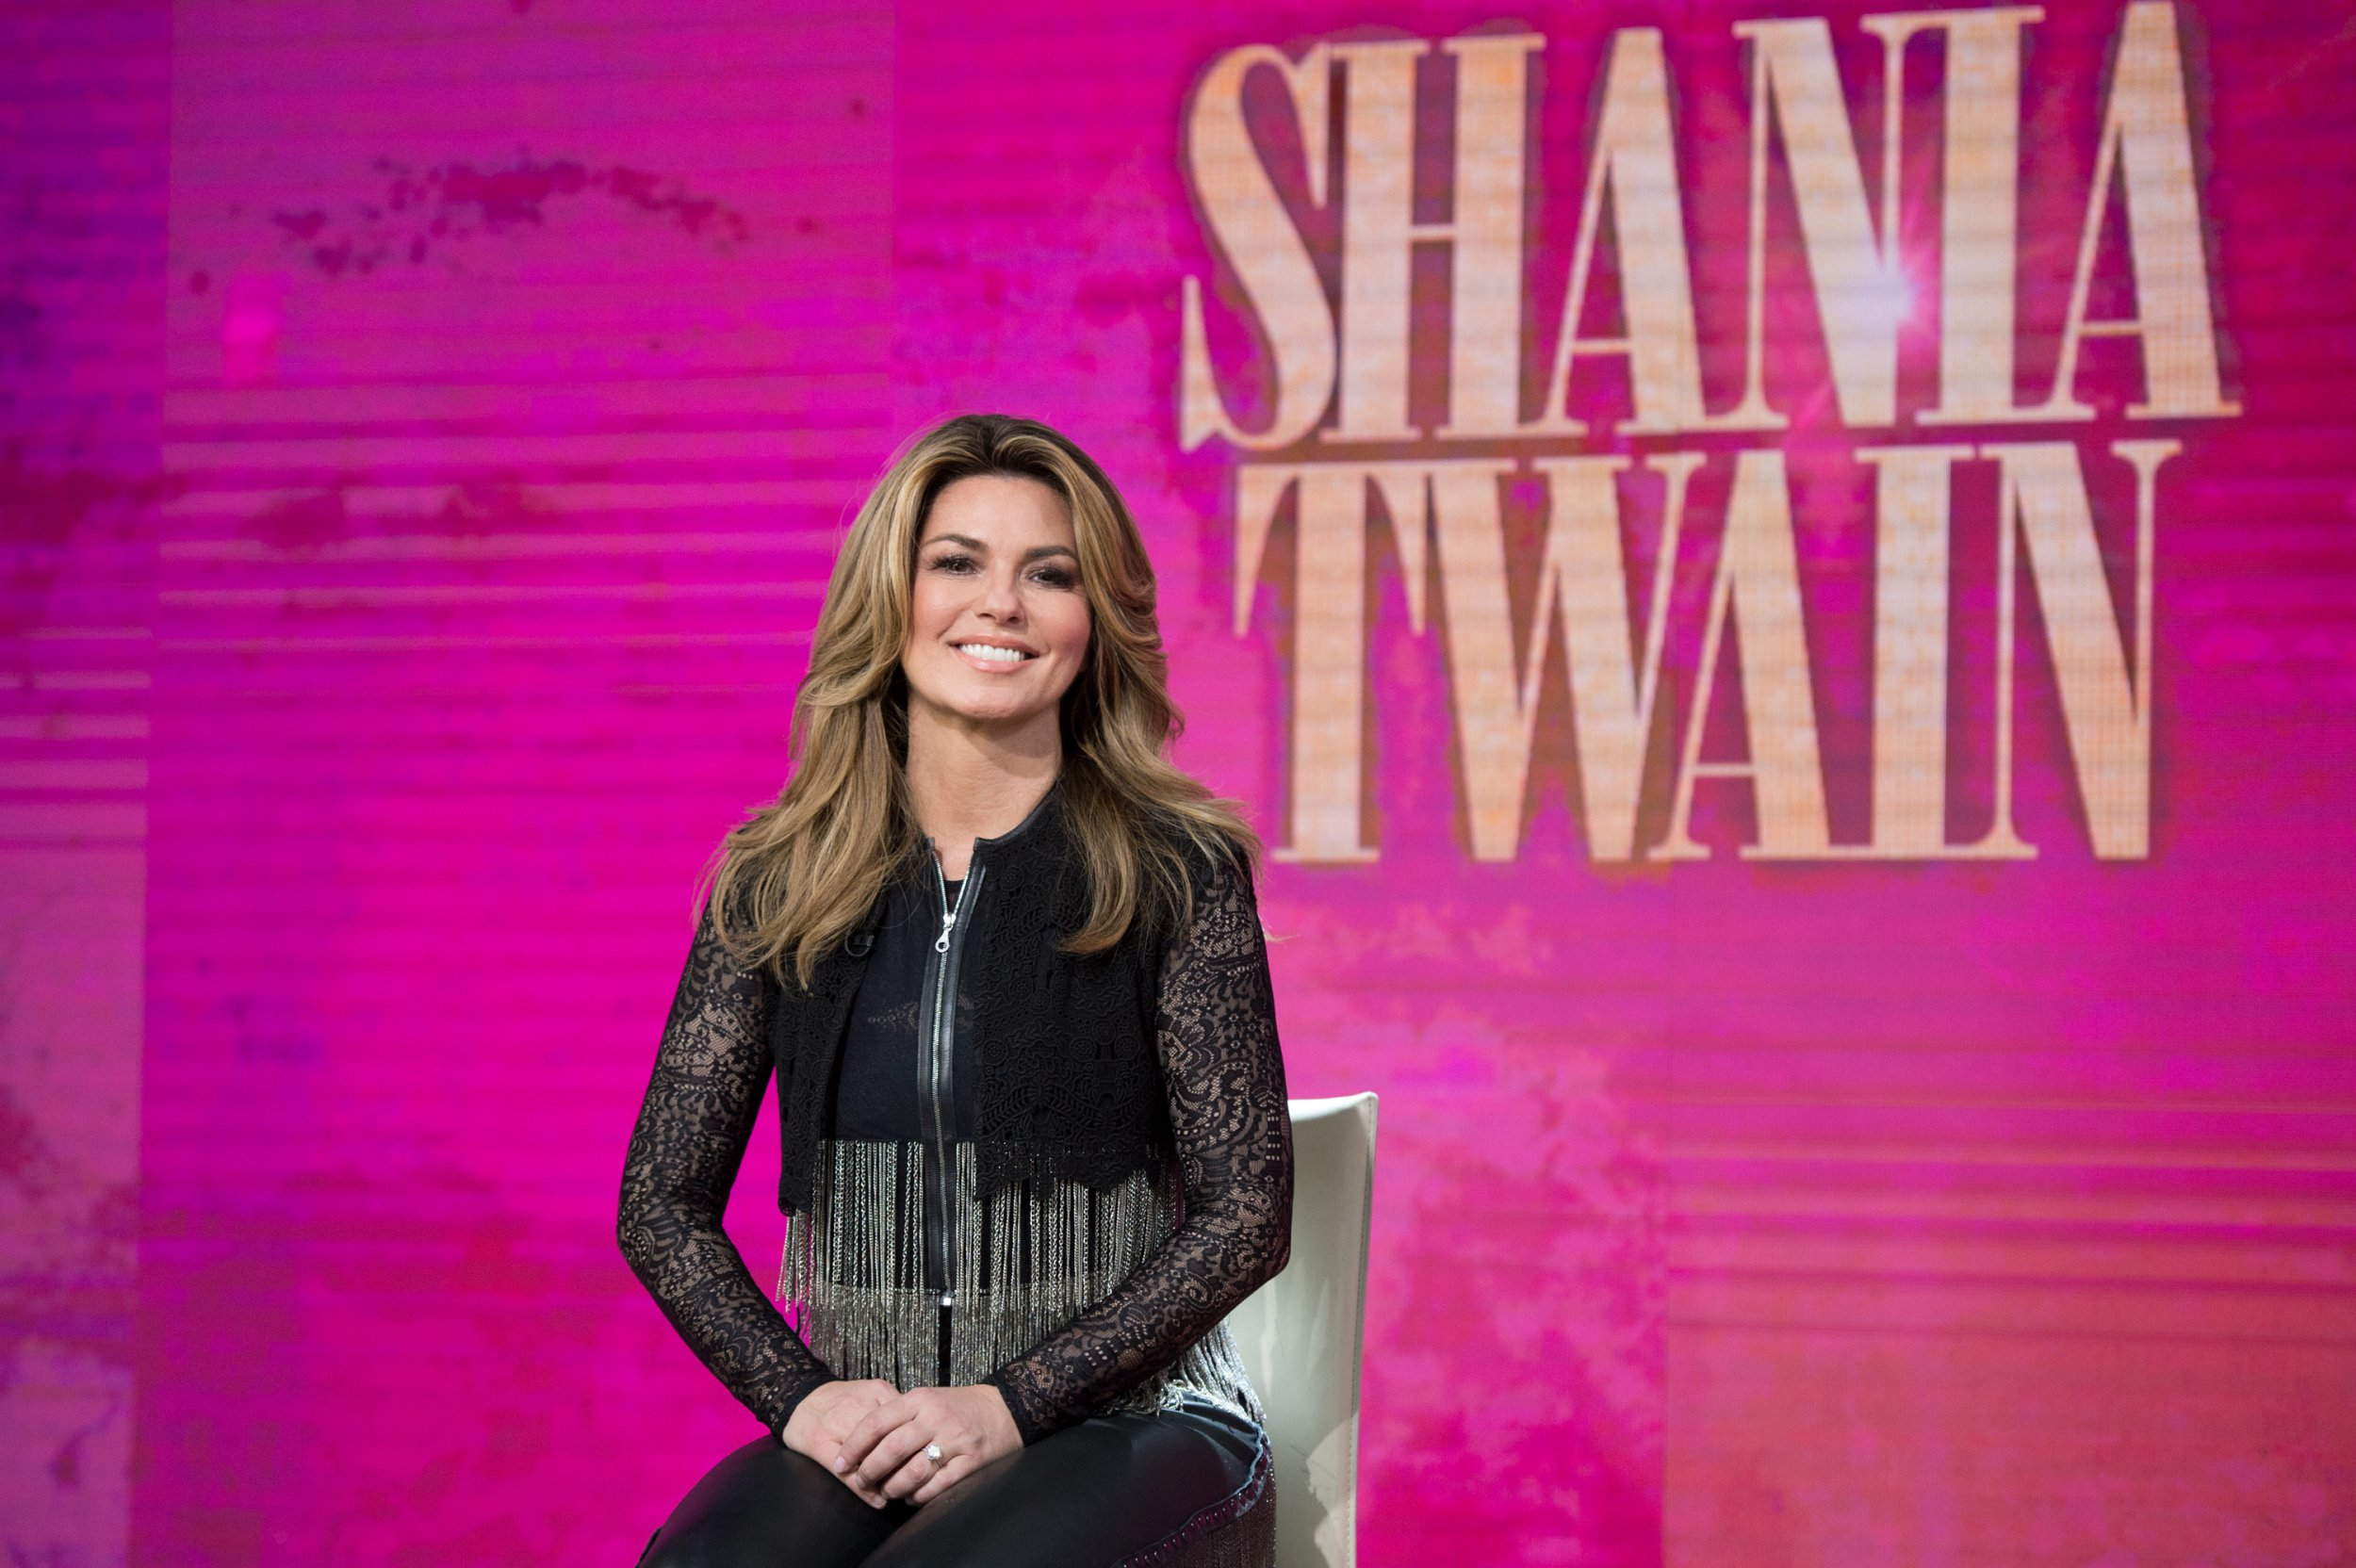 TODAY -- Pictured: Shania Twain on Friday, June 16, 2017 -- (Photo by: Nathan Congleton/NBC/NBCU Photo Bank via Getty Images)